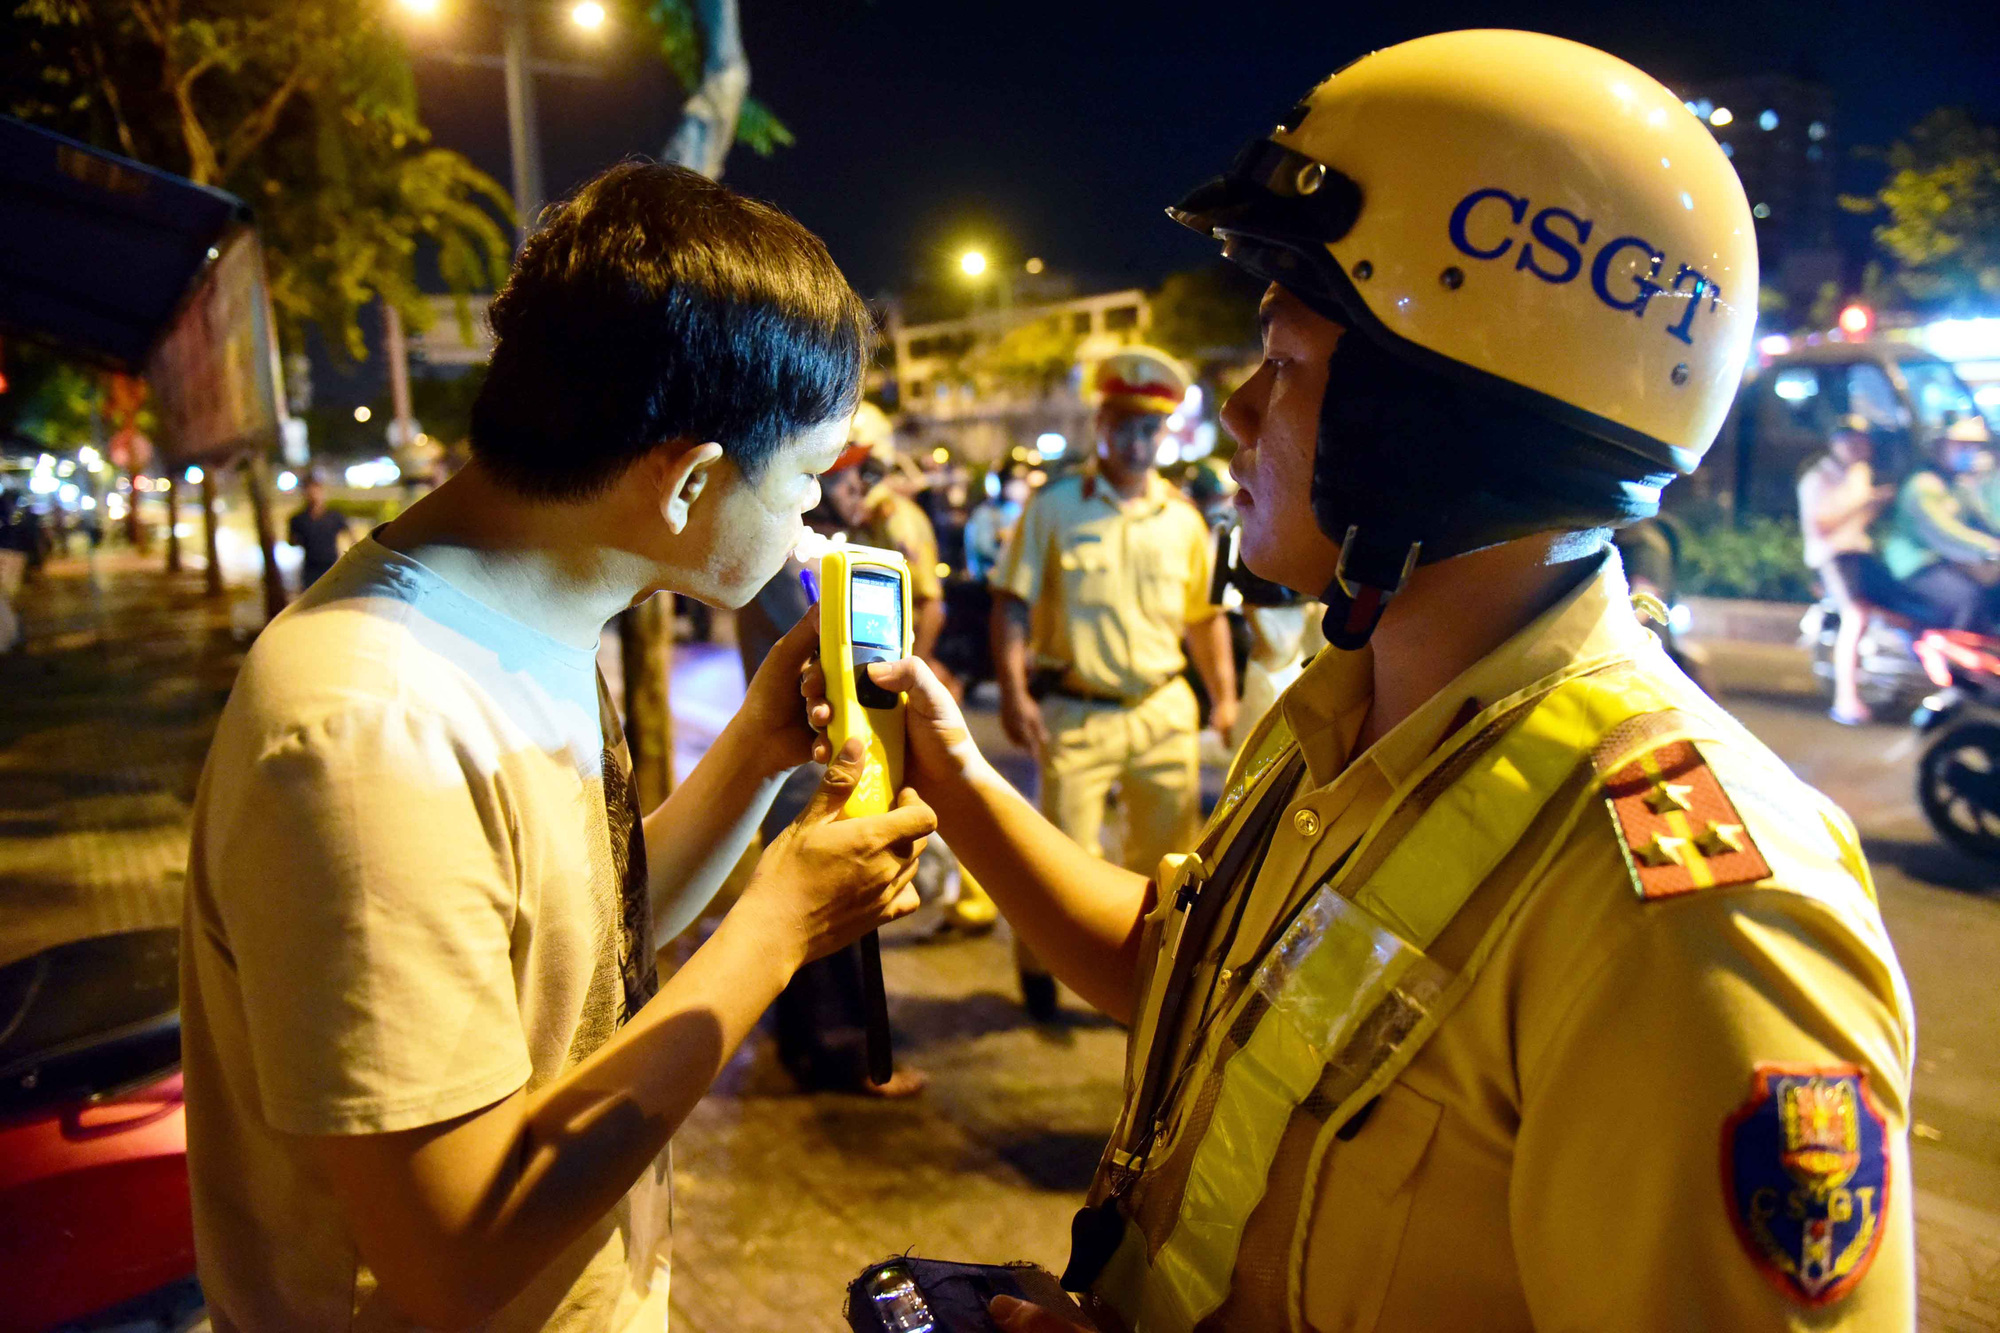 A man breathes into a breathalyzer to have his alcohol concentration measured in Ho Chi Minh City in early January 2020. Photo: Quang Dinh / Tuoi Tre